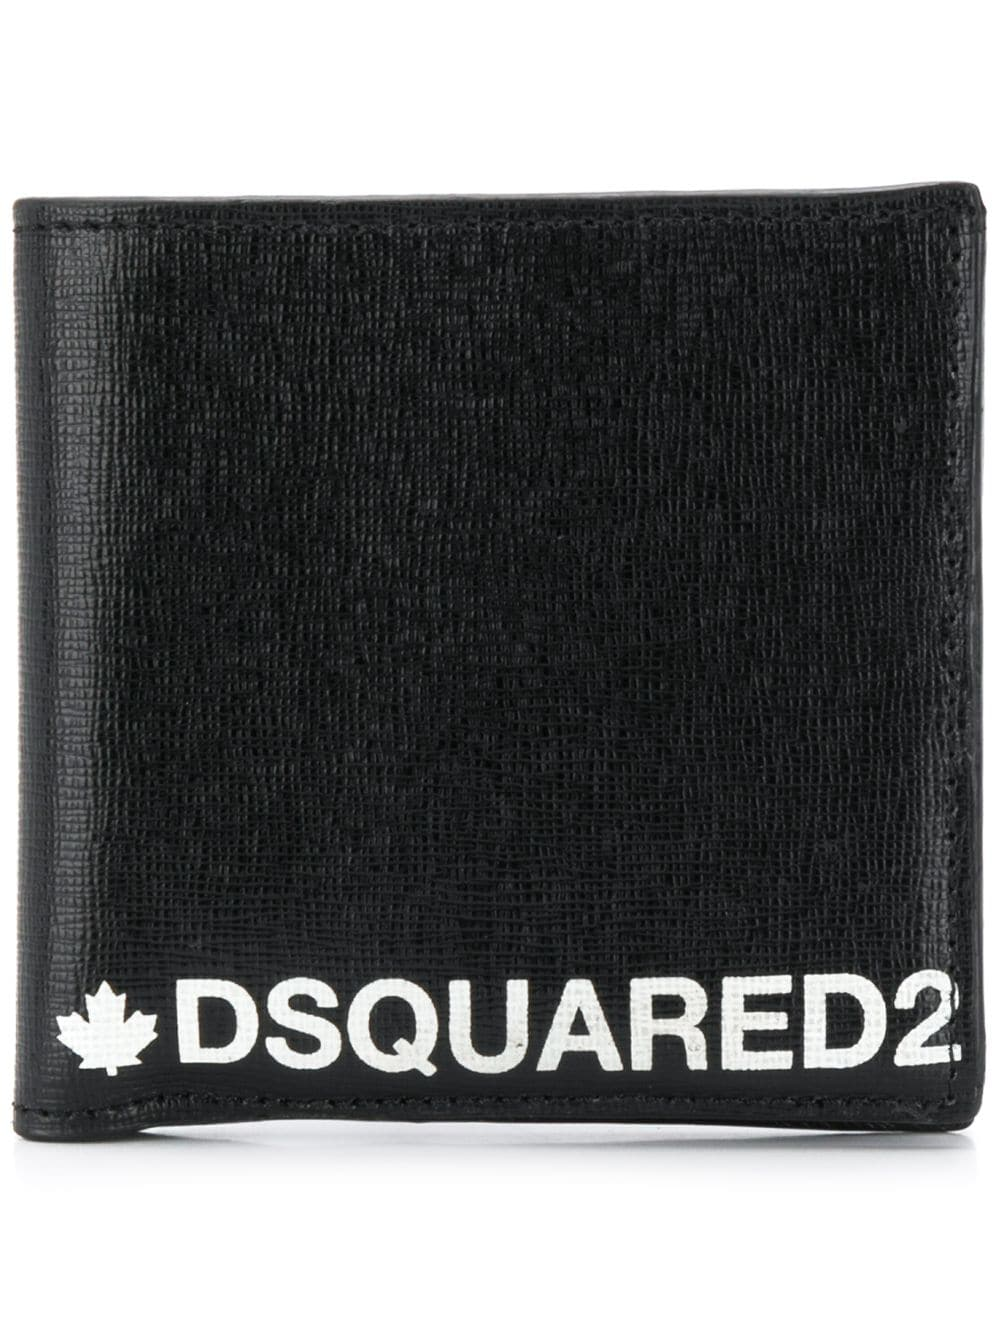 DSQUARED2 Logo Wallet | MAISONDEFASHION.COM